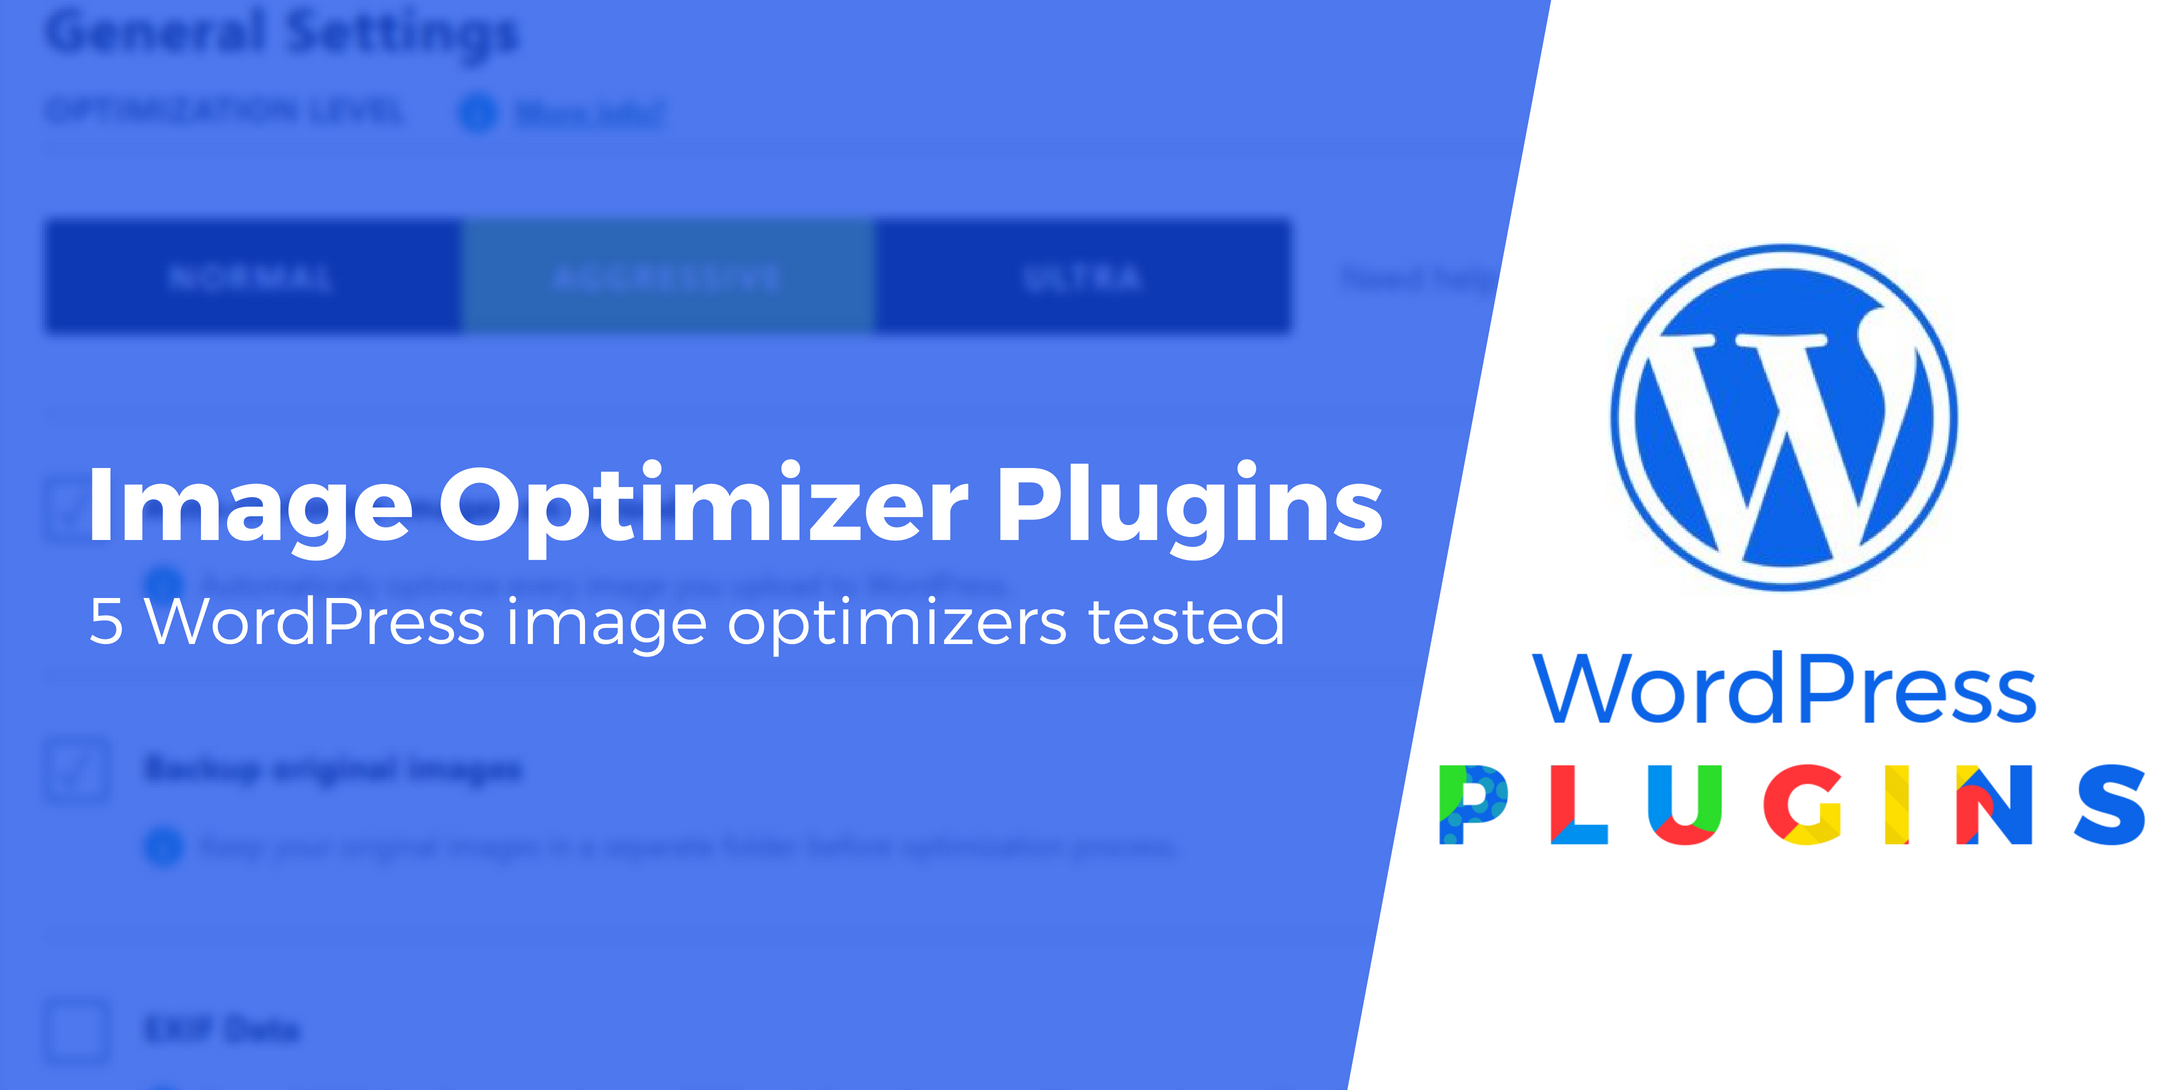 5 Best WordPress Image Optimizer Plugins (Tested and Compared)